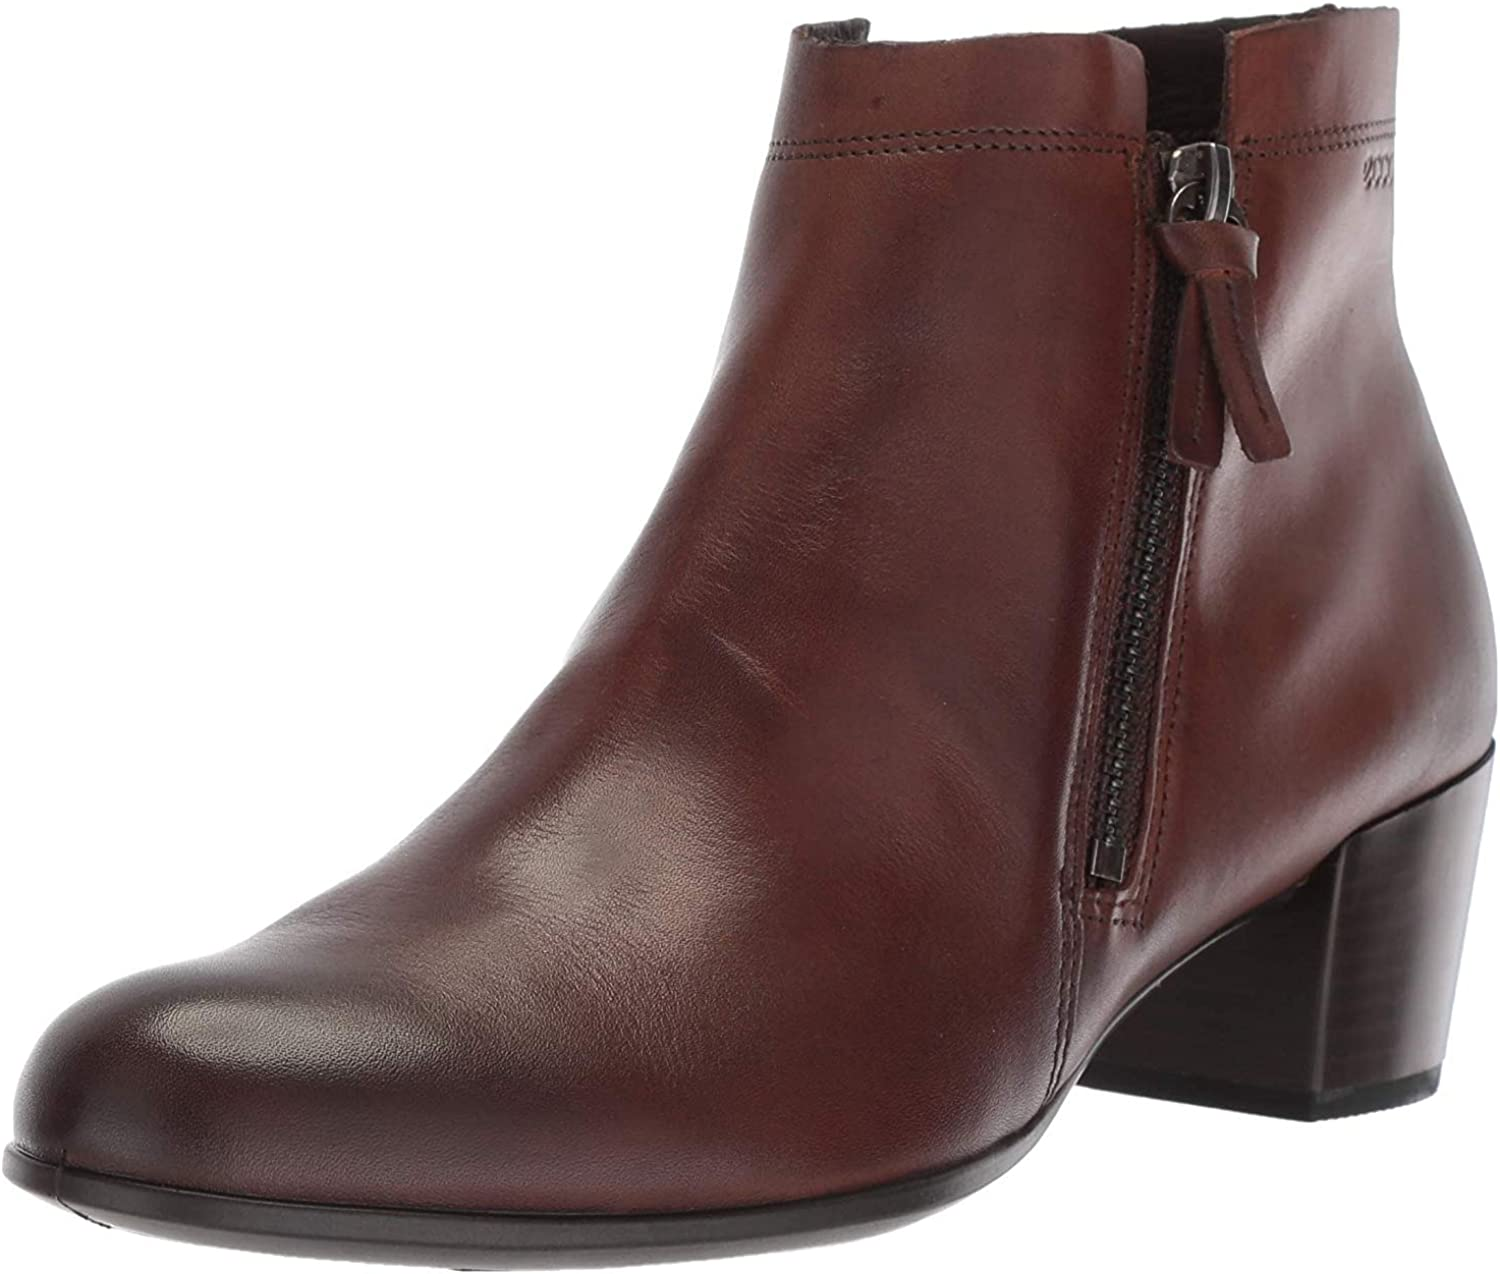 Los Angeles Mall ECCO Women's New Shipping Free Shape M Boot 35 Bootie Ankle